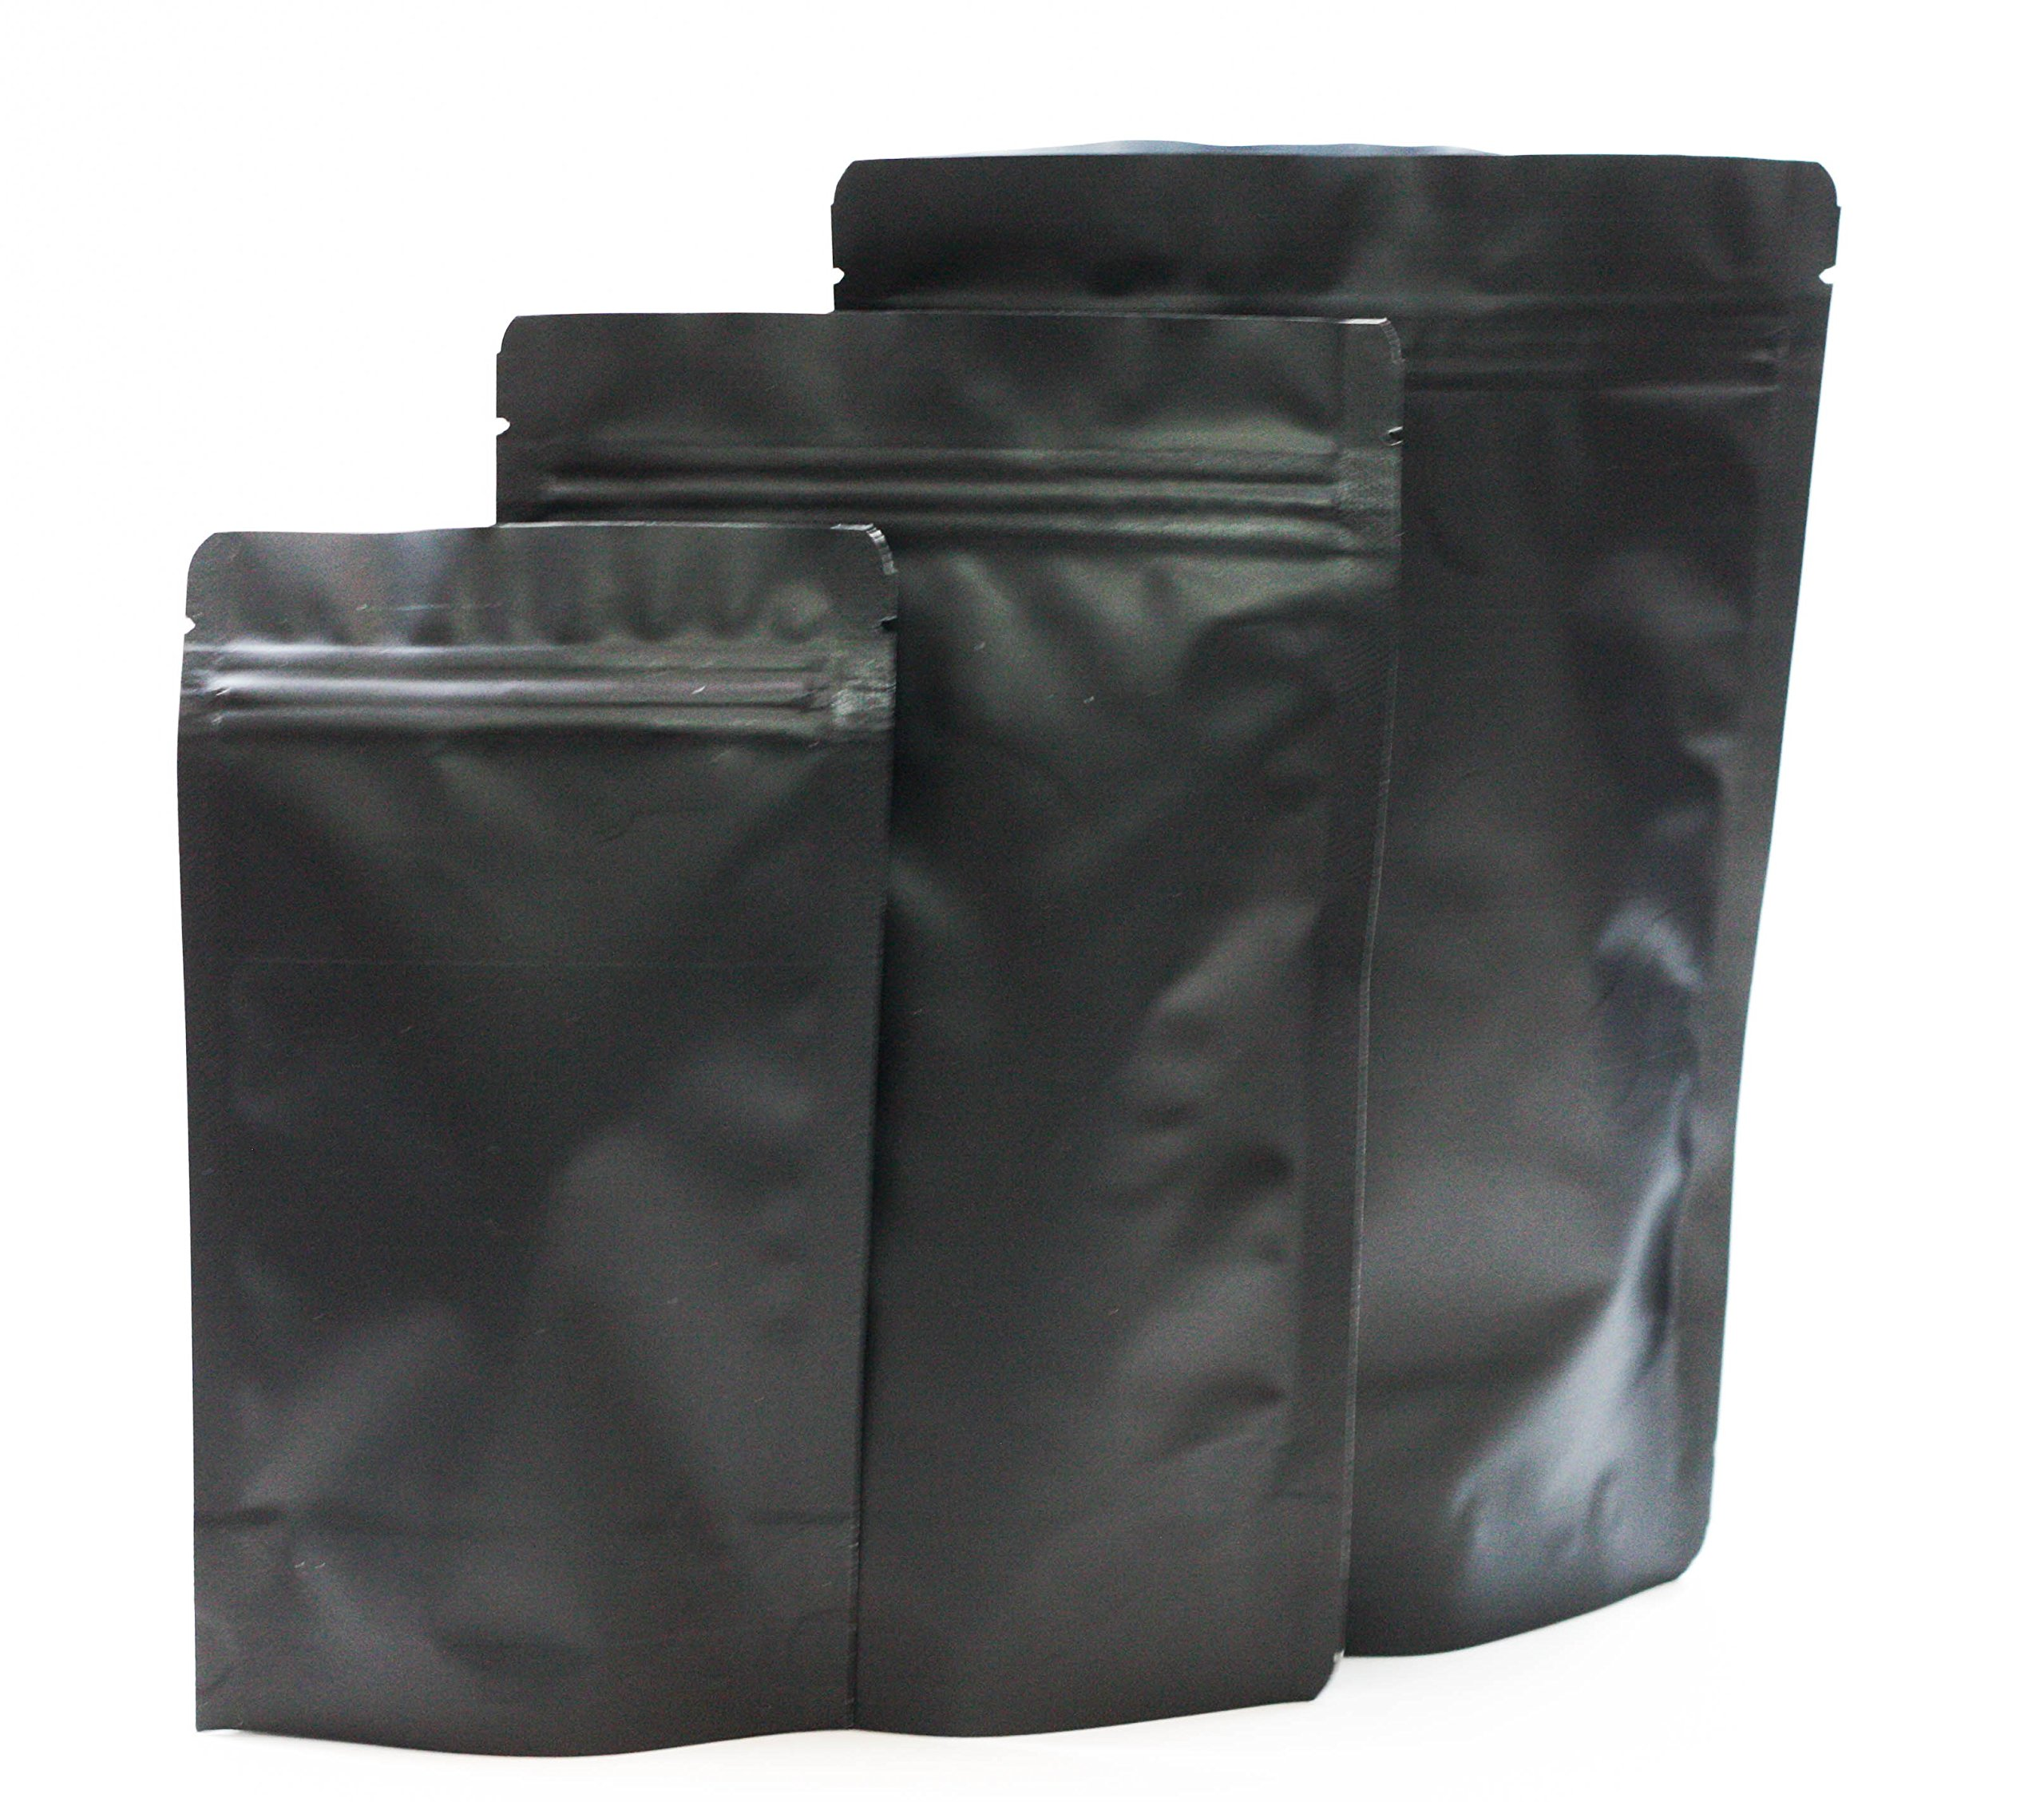 Assorted Sizes Matte Black 5.5 MIL Stand Up Airtight Zipper Pouches Smell Leak Proof Food Herb Coffee Protein Powder Storage Bags (750, S(250)+M(250)+L(250)) by PackMan Packaging